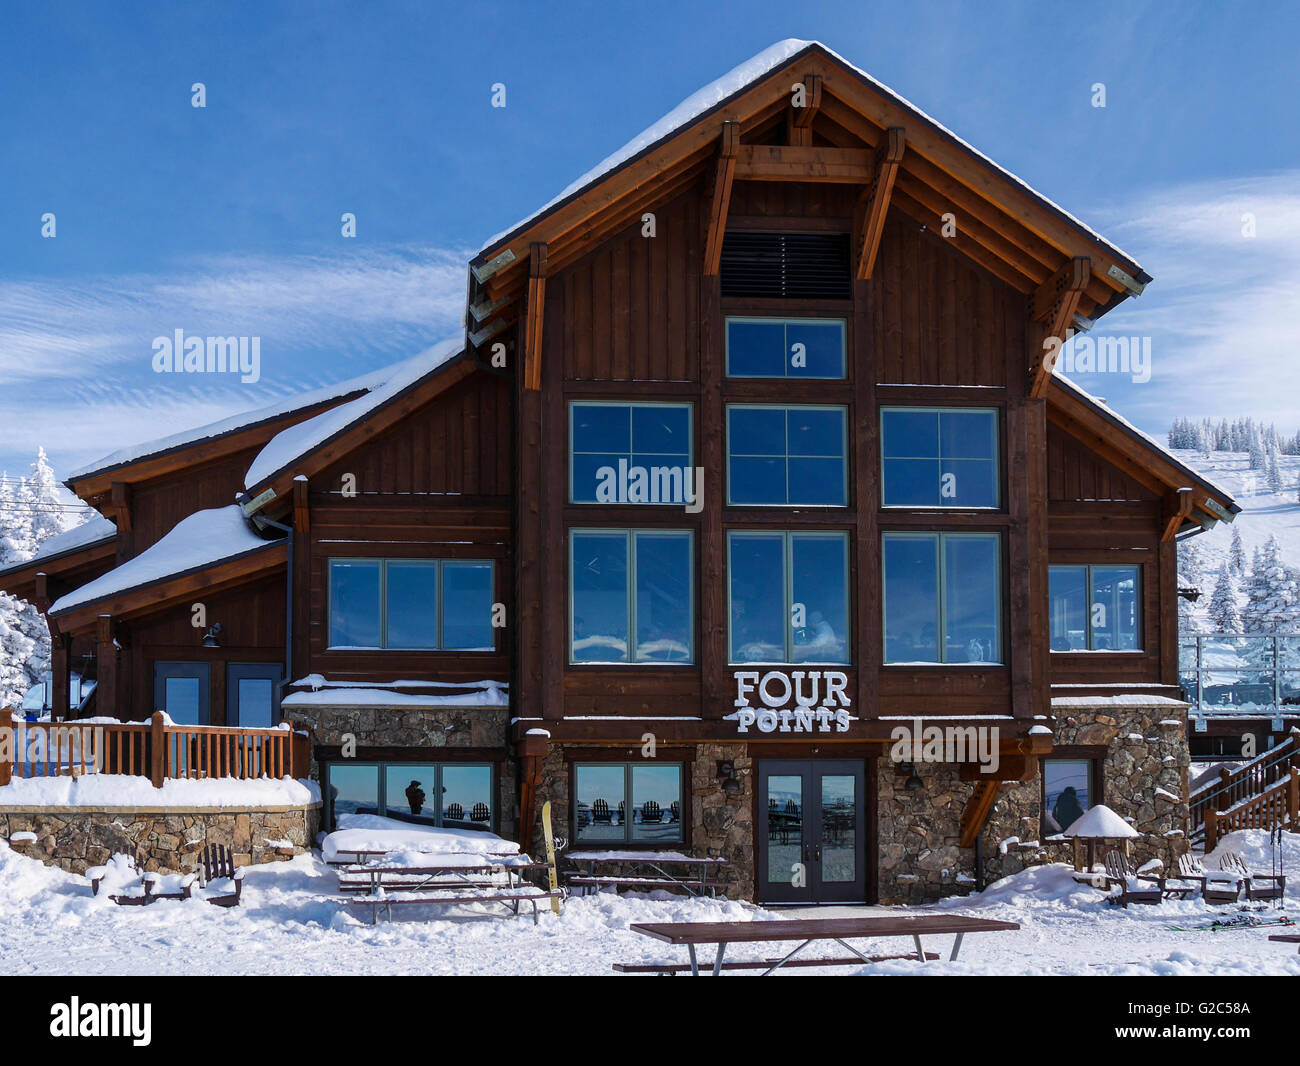 View of Four Points Lodge, Steamboat ski area, Steamboat Springs, Colorado. - Stock Image